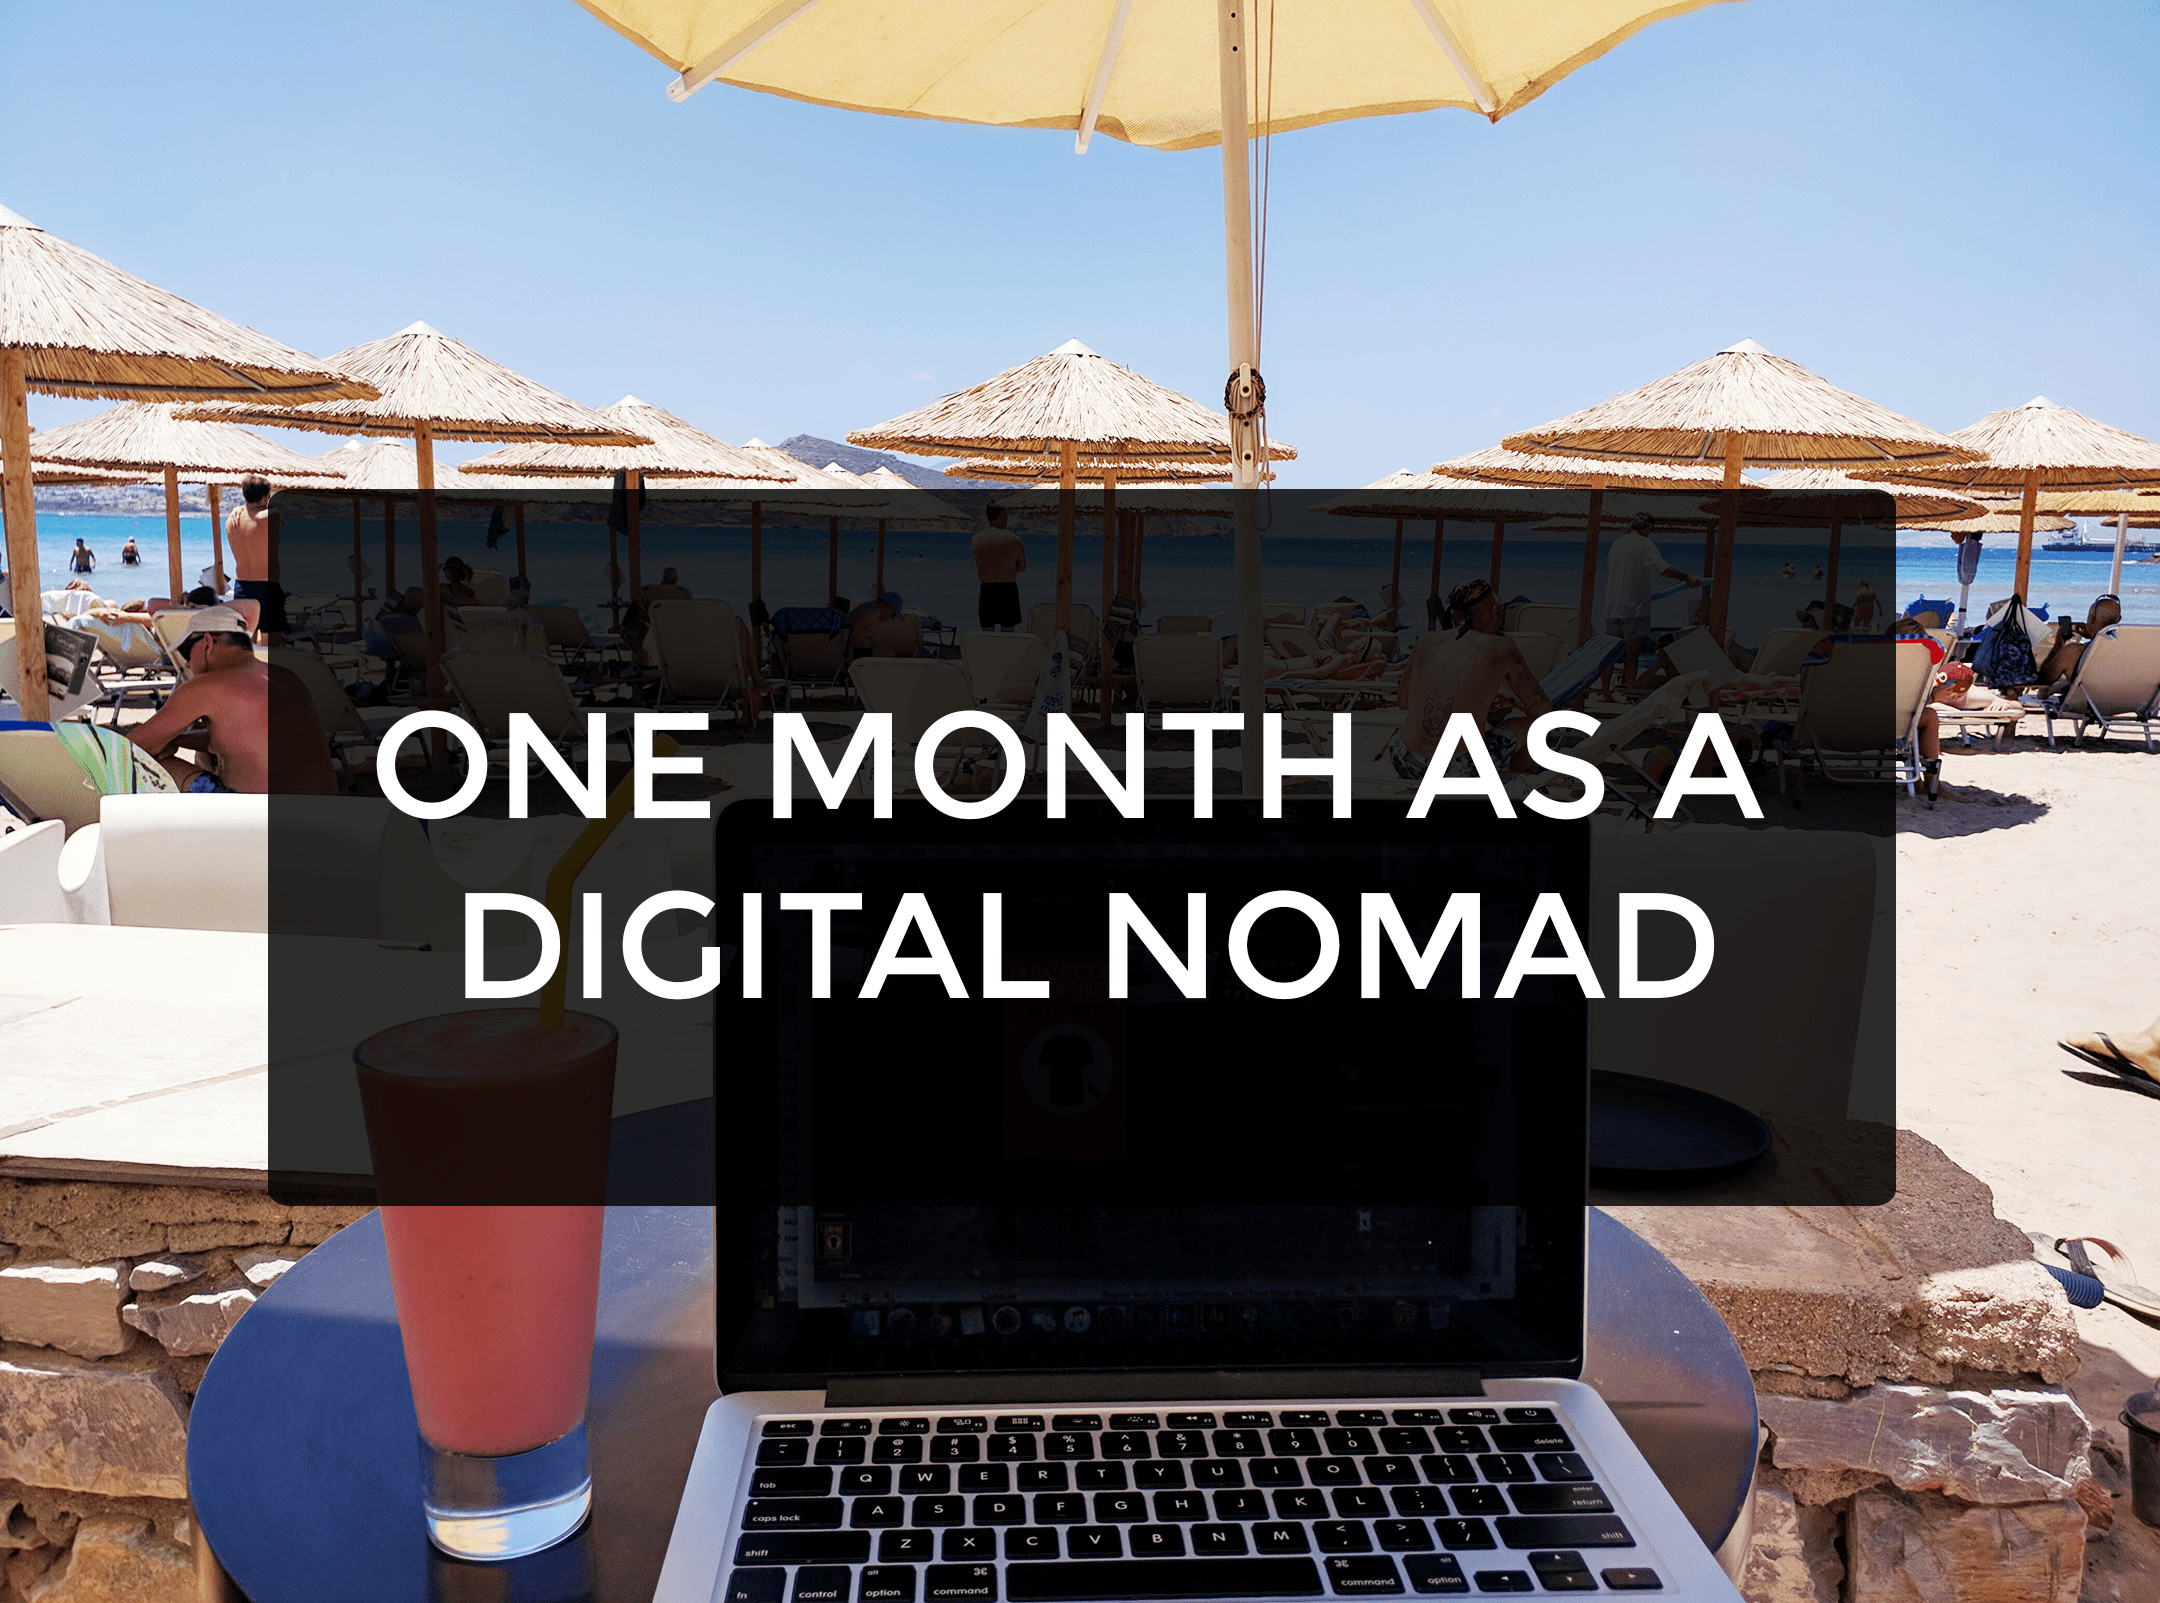 one month as a digitalnomad